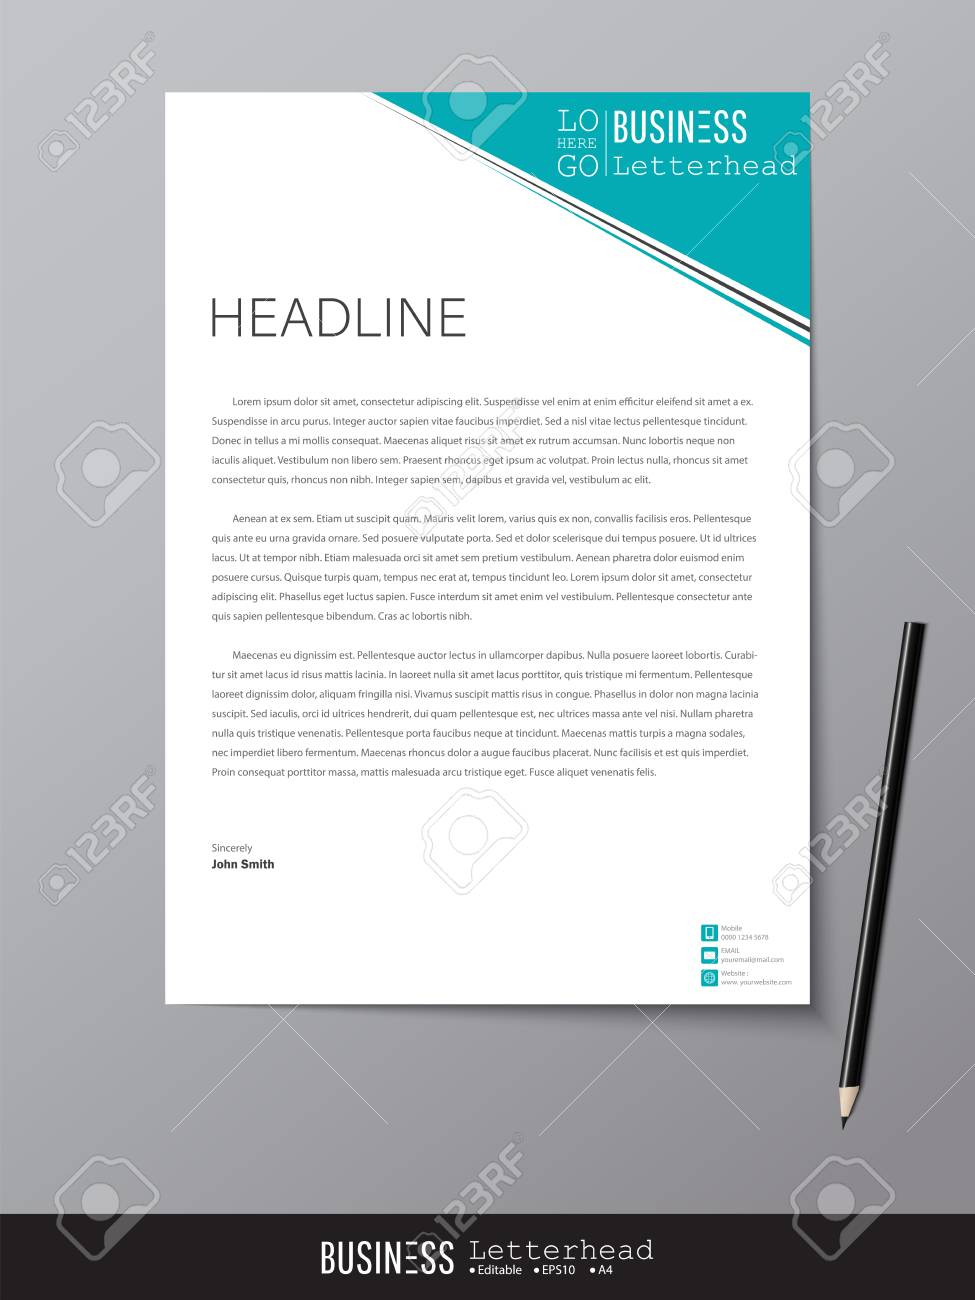 Letterhead design template and mockup minimalist style vector letterhead design template and mockup minimalist style vector design for business or letter layout cheaphphosting Images